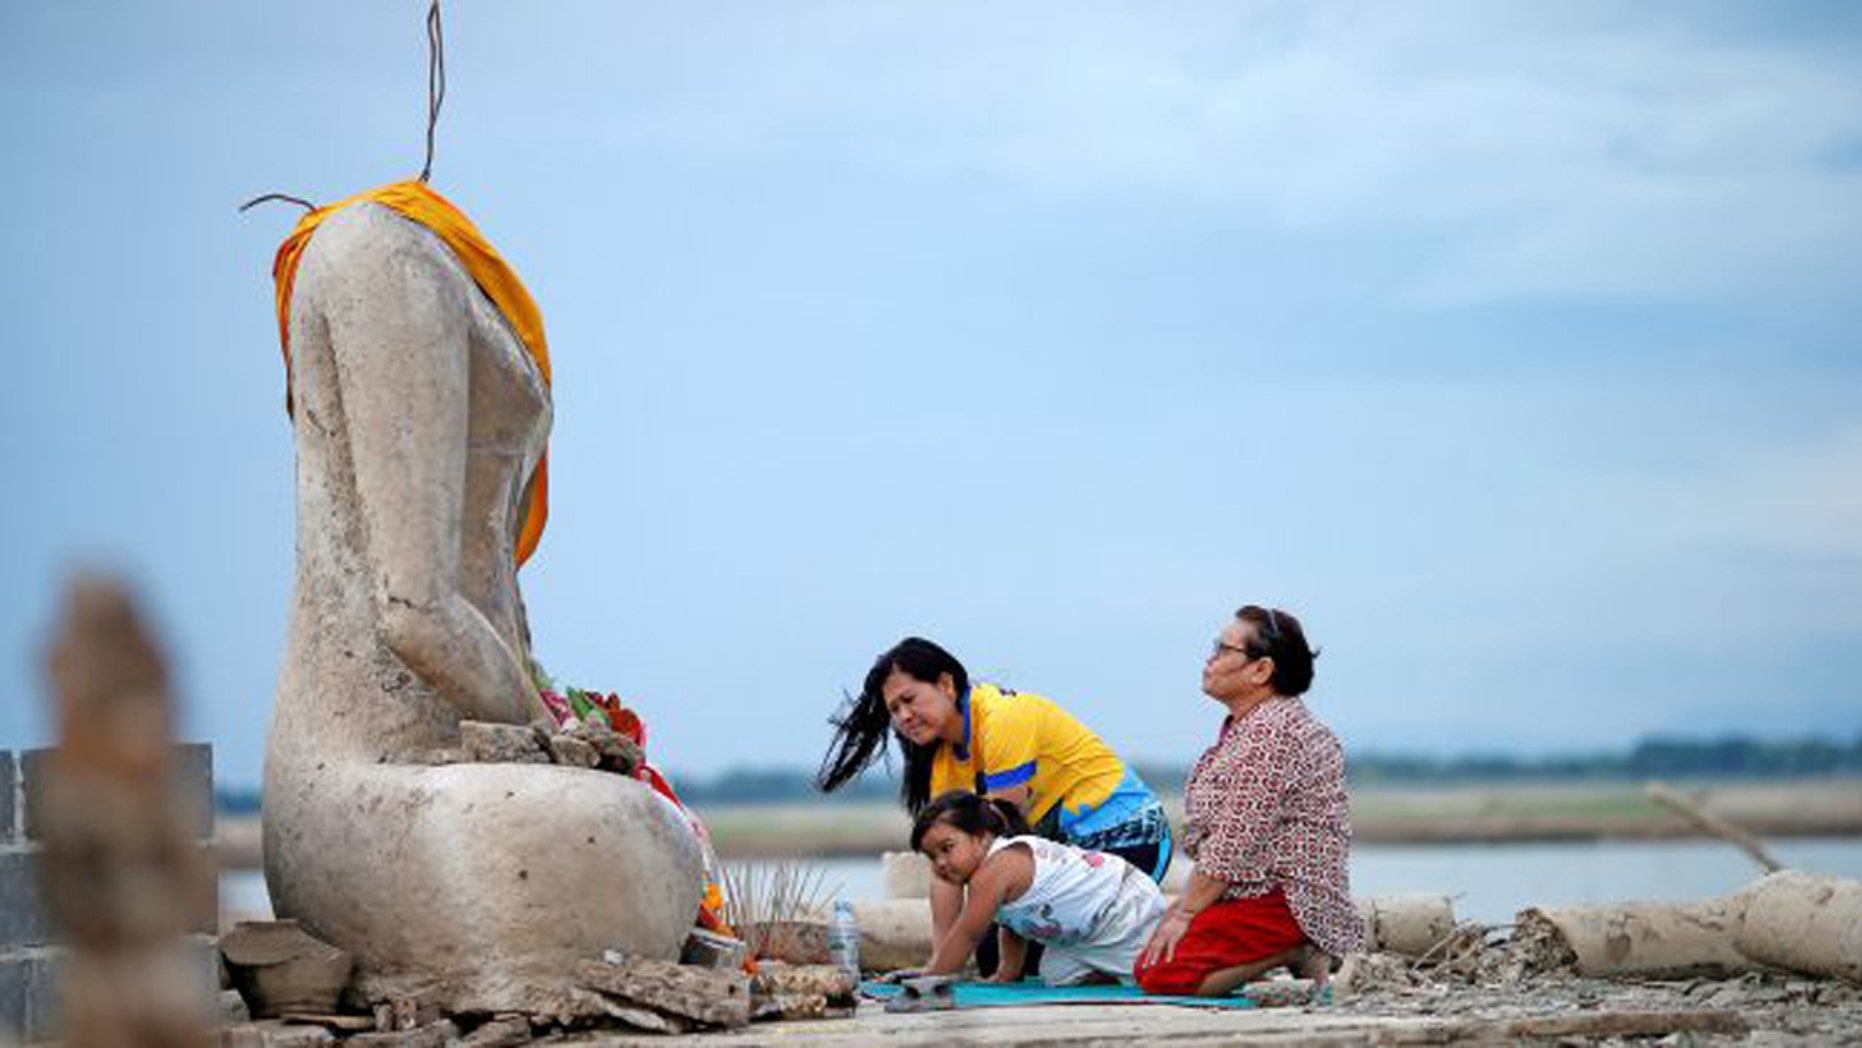 A family prays near the ruins of a headless Buddha statue that resurfaced in a dried-up dam because of a drought in Lopburi, Thailand, on Aug. 1, 2019. (Credit: Soe Zeya Tun/Reuters/Newscom)